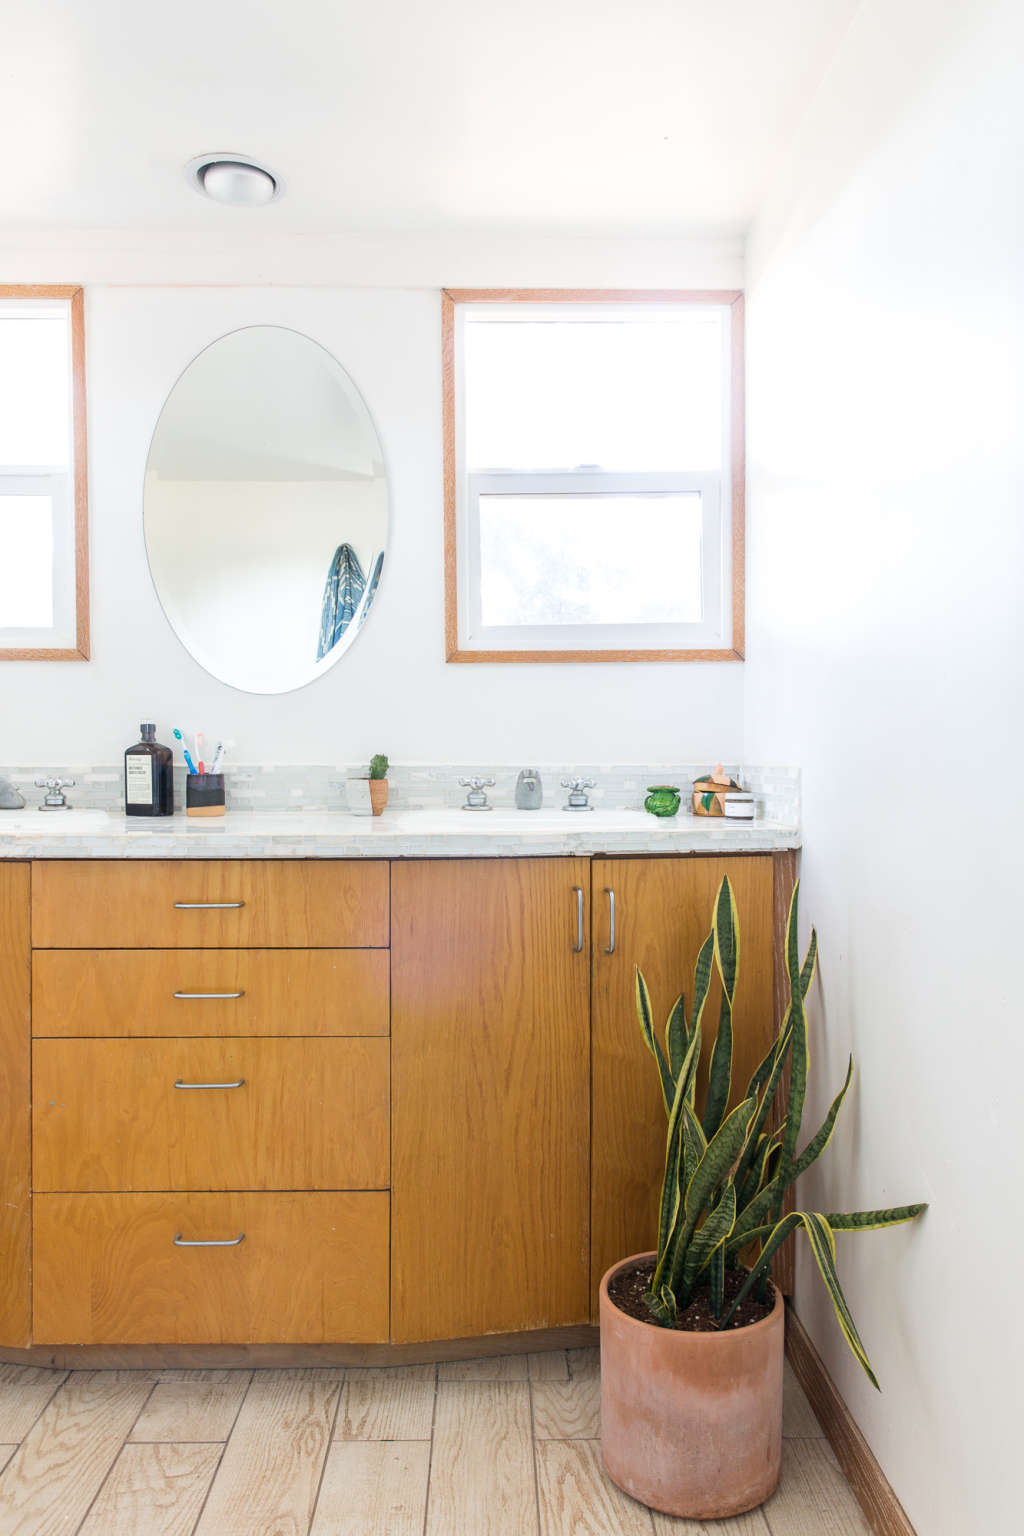 Bathroom Vanities - Recent Trends, Cheap Ideas | Apartment Therapy